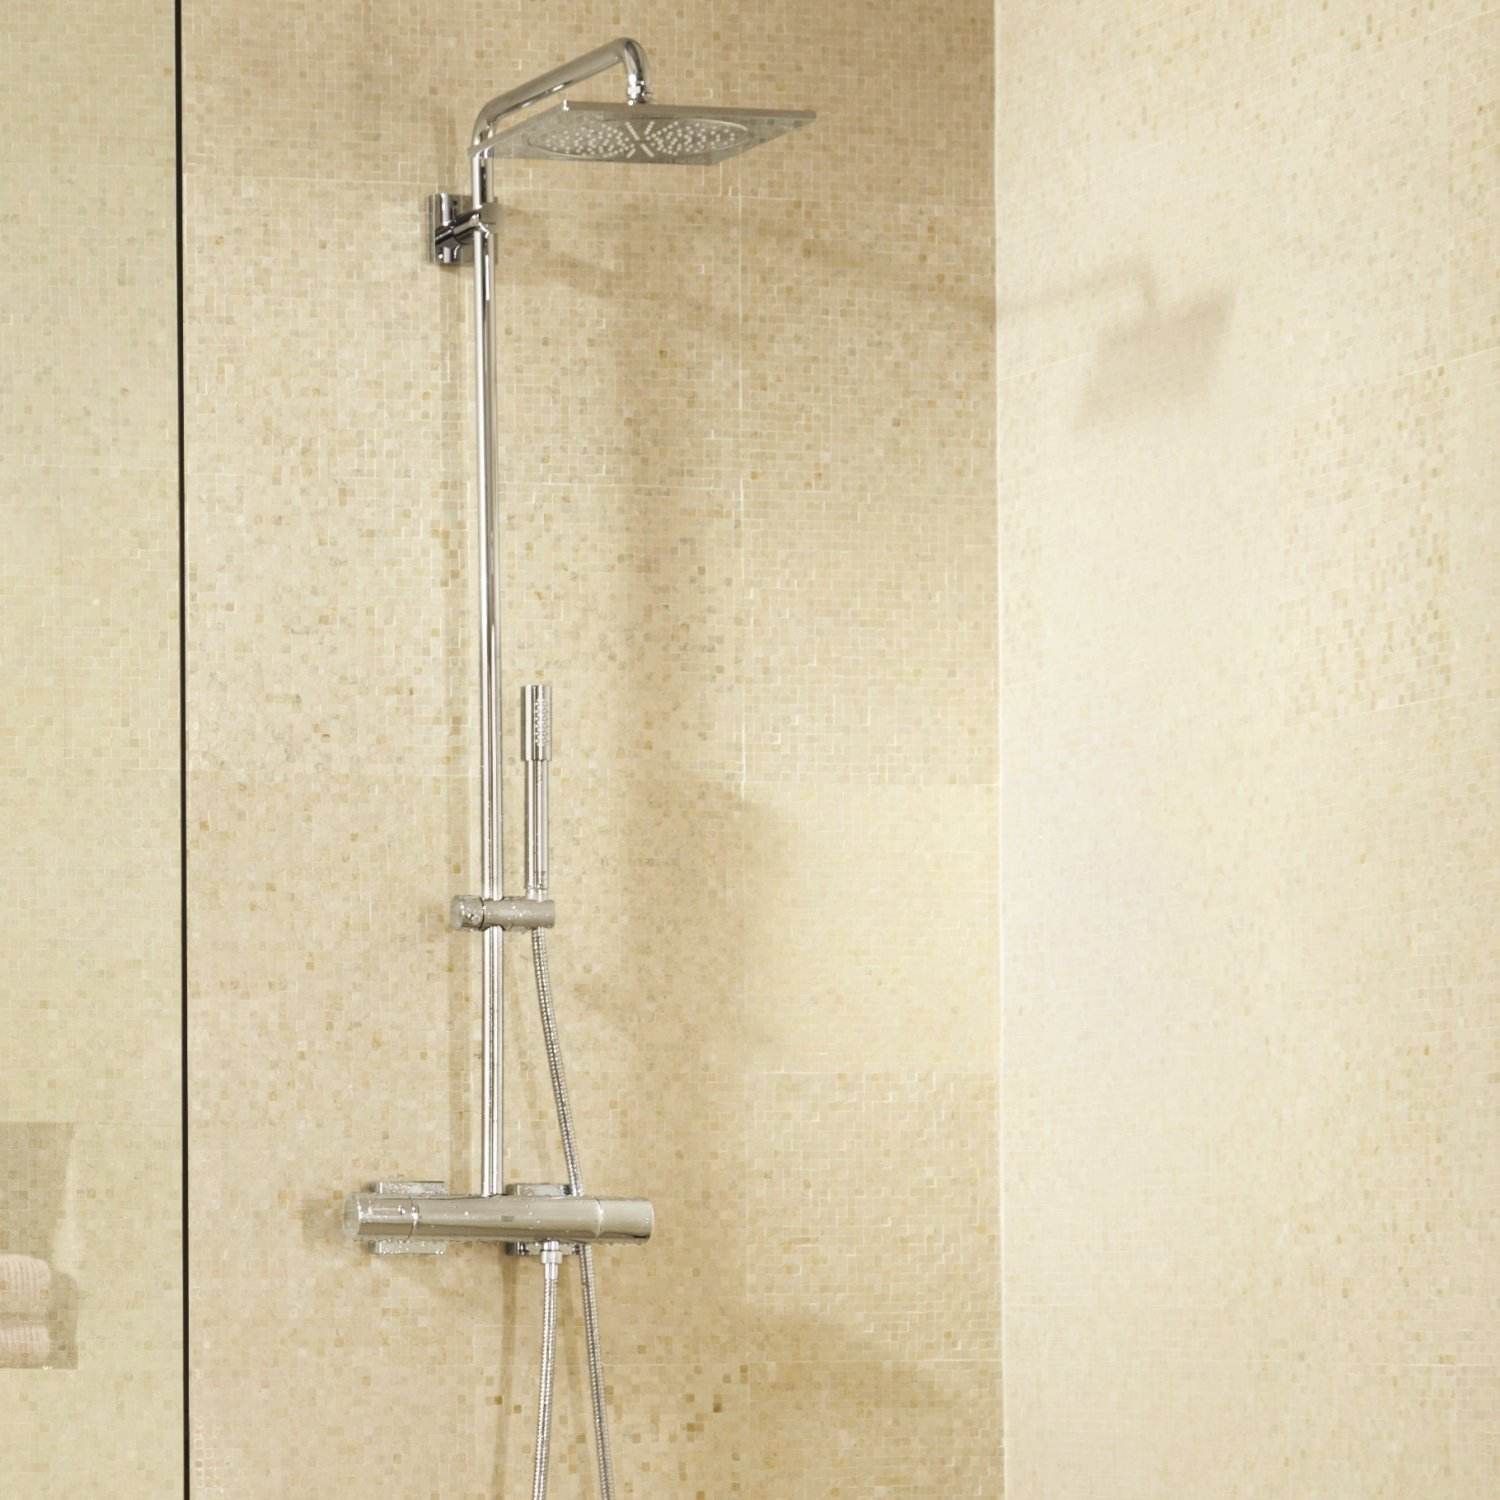 colonne de douche grohe rainshower f series et thermostat. Black Bedroom Furniture Sets. Home Design Ideas